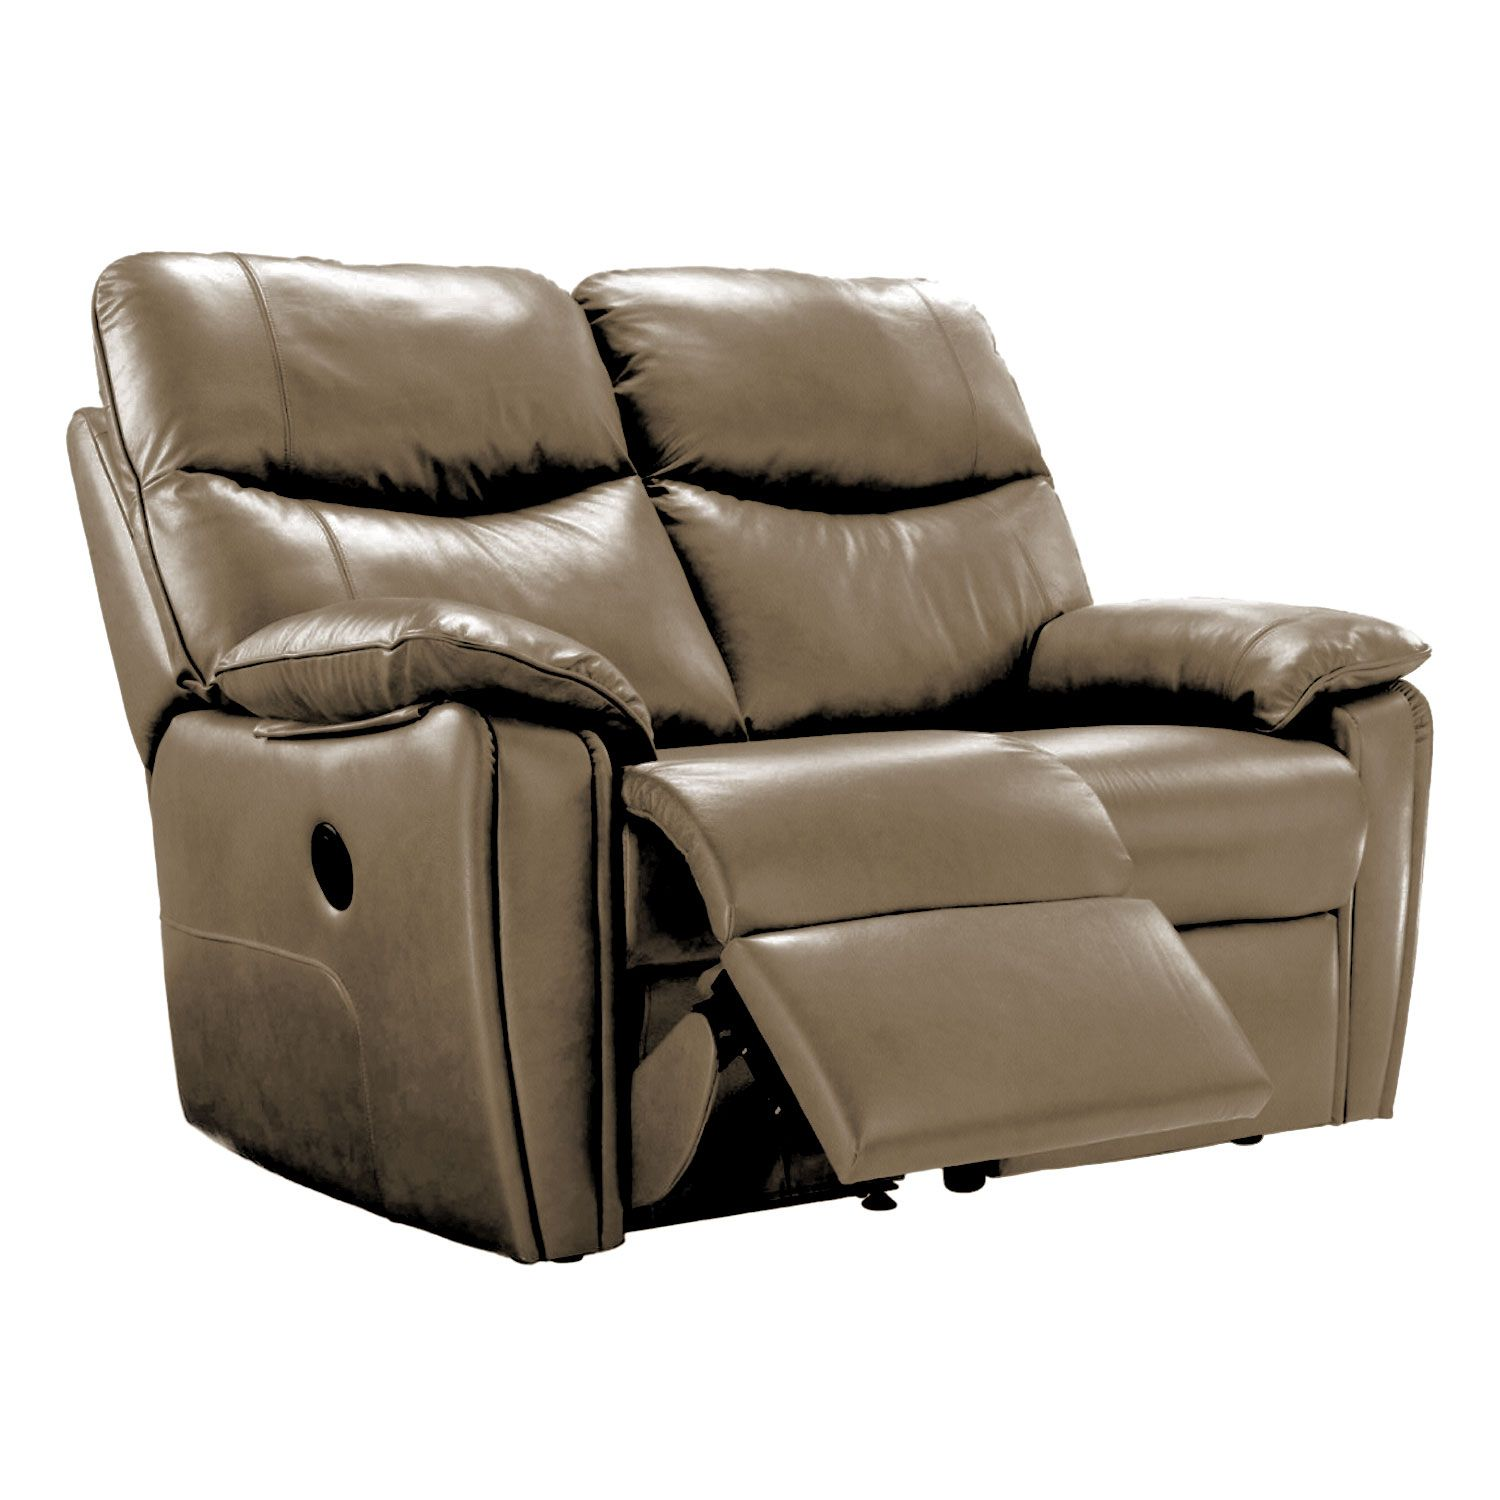 G Plan Henley 2 Seater Right Power Recliner Leather Sofa